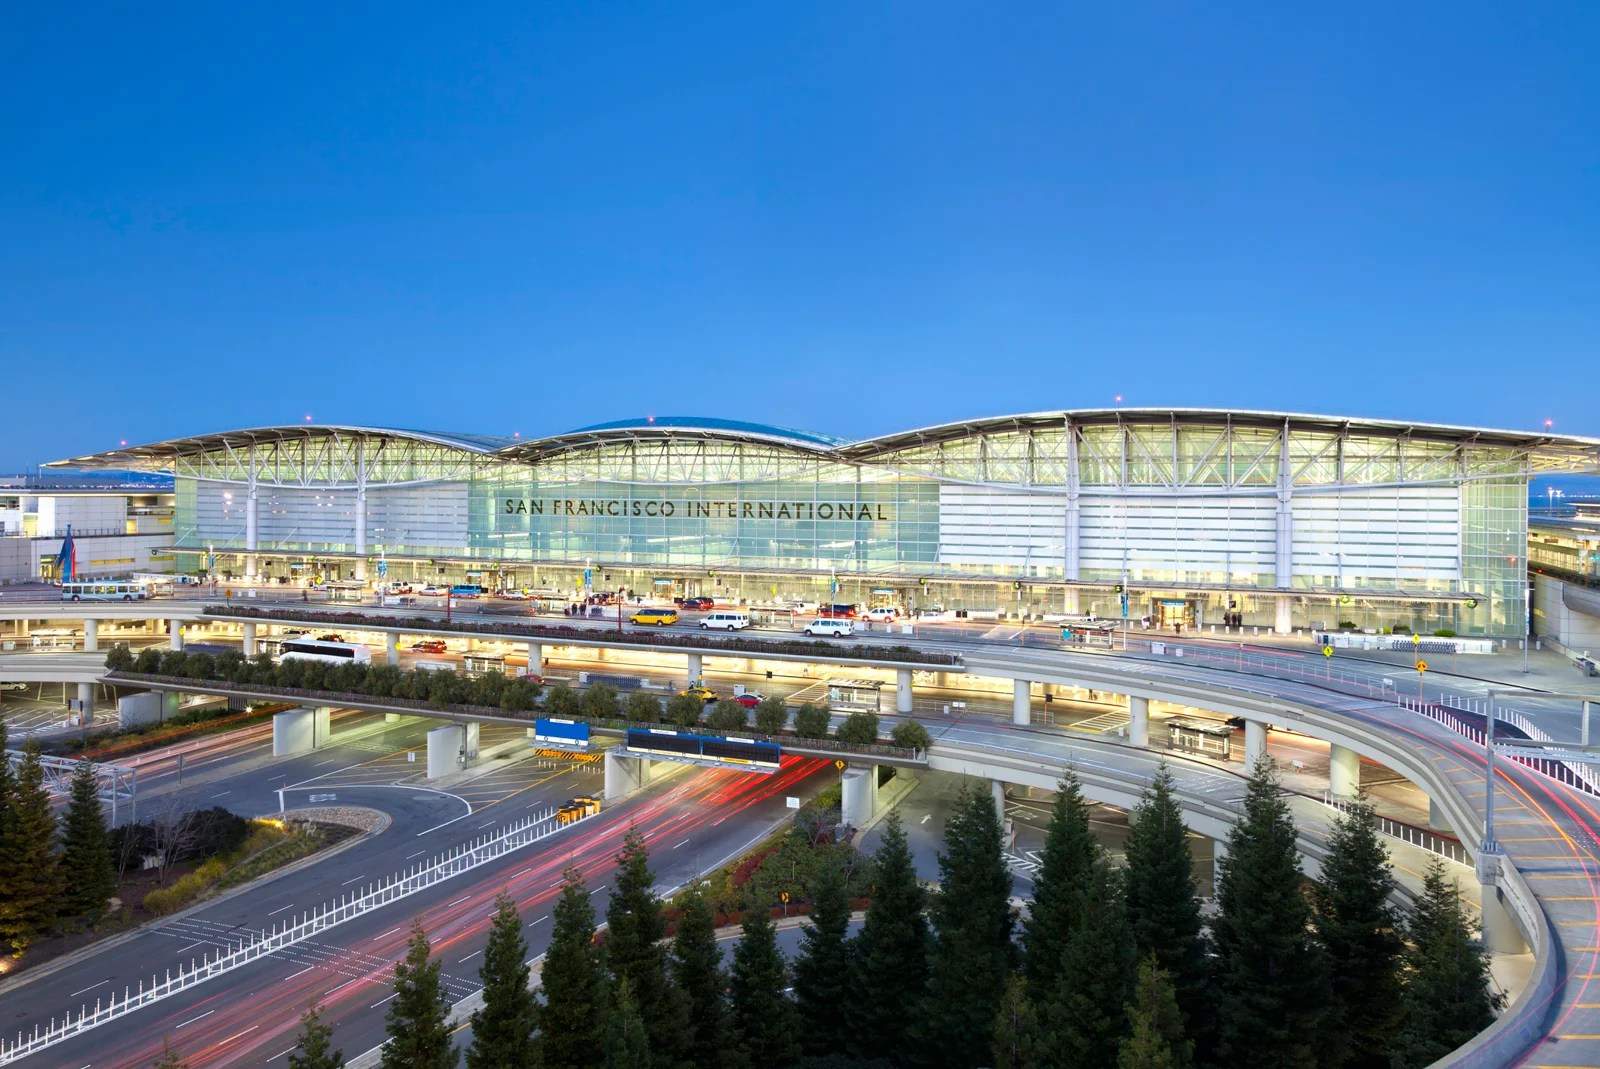 San Francisco airport gets a second Priority Pass lounge